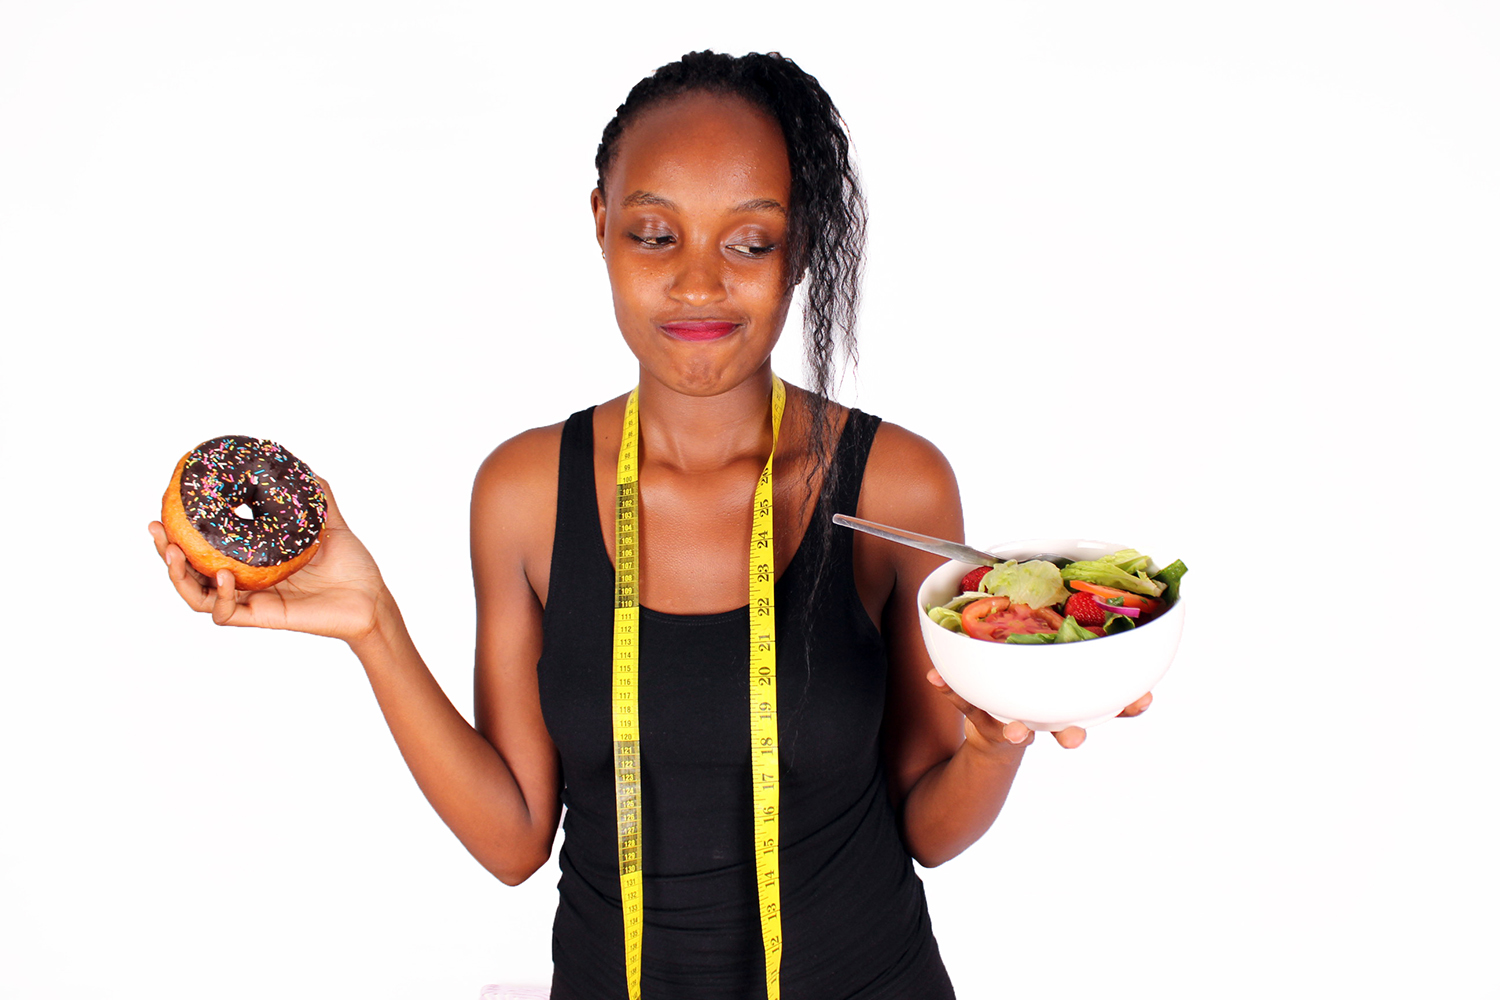 Diet woman holding salad bowl and doughnut